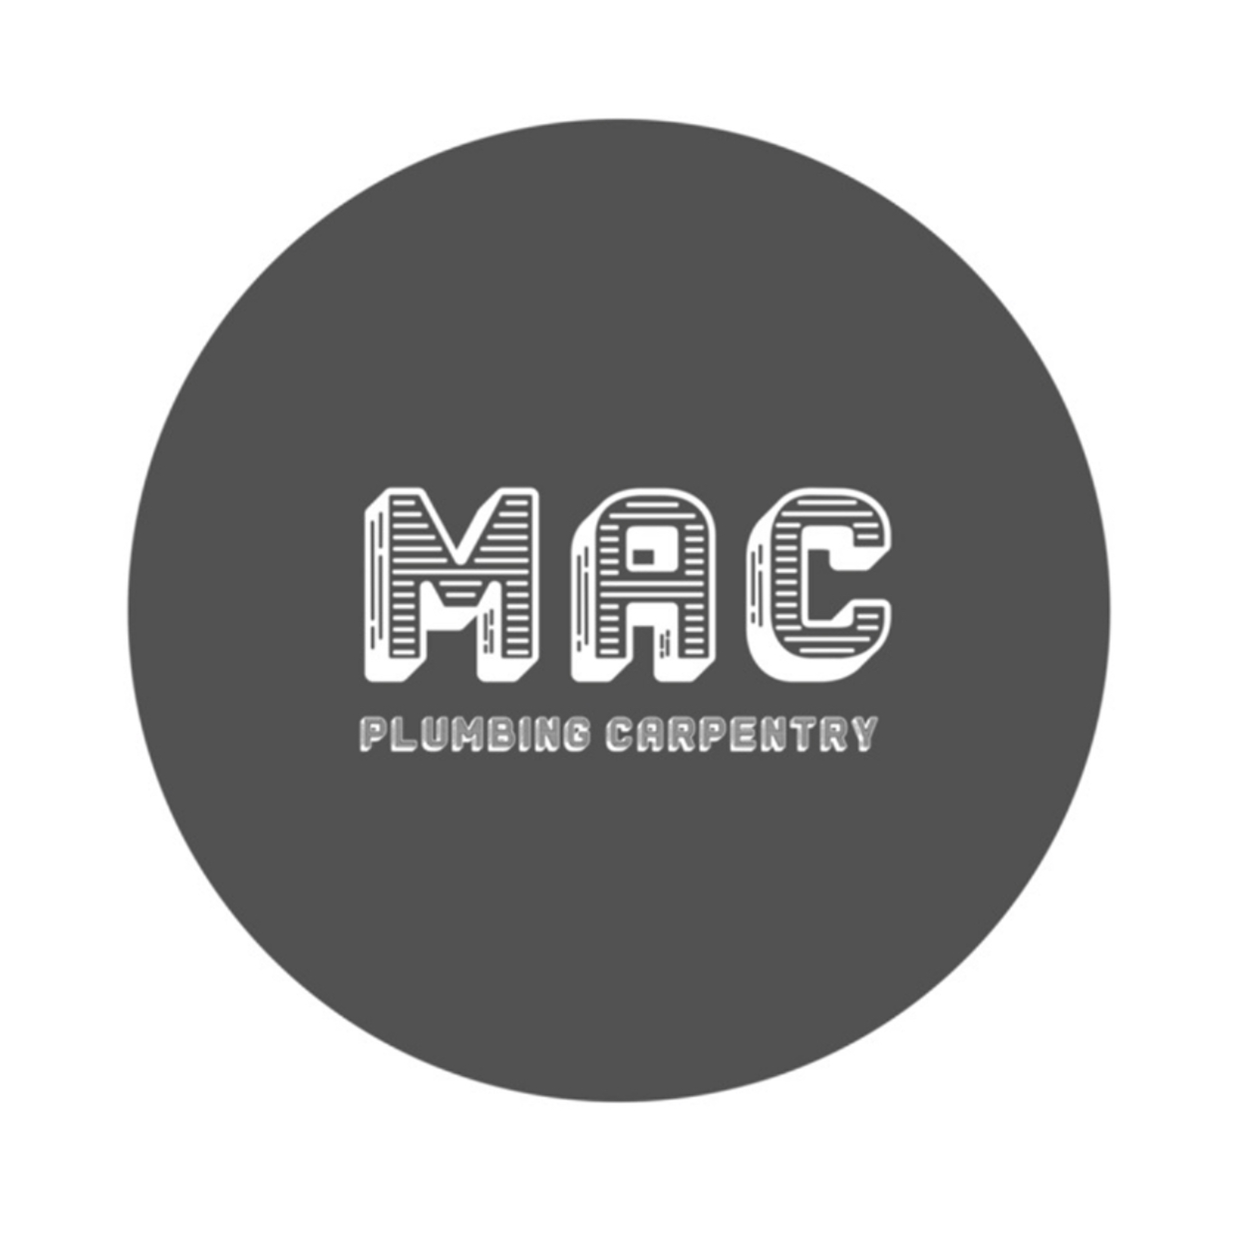 Mac Plumbing Carpentry